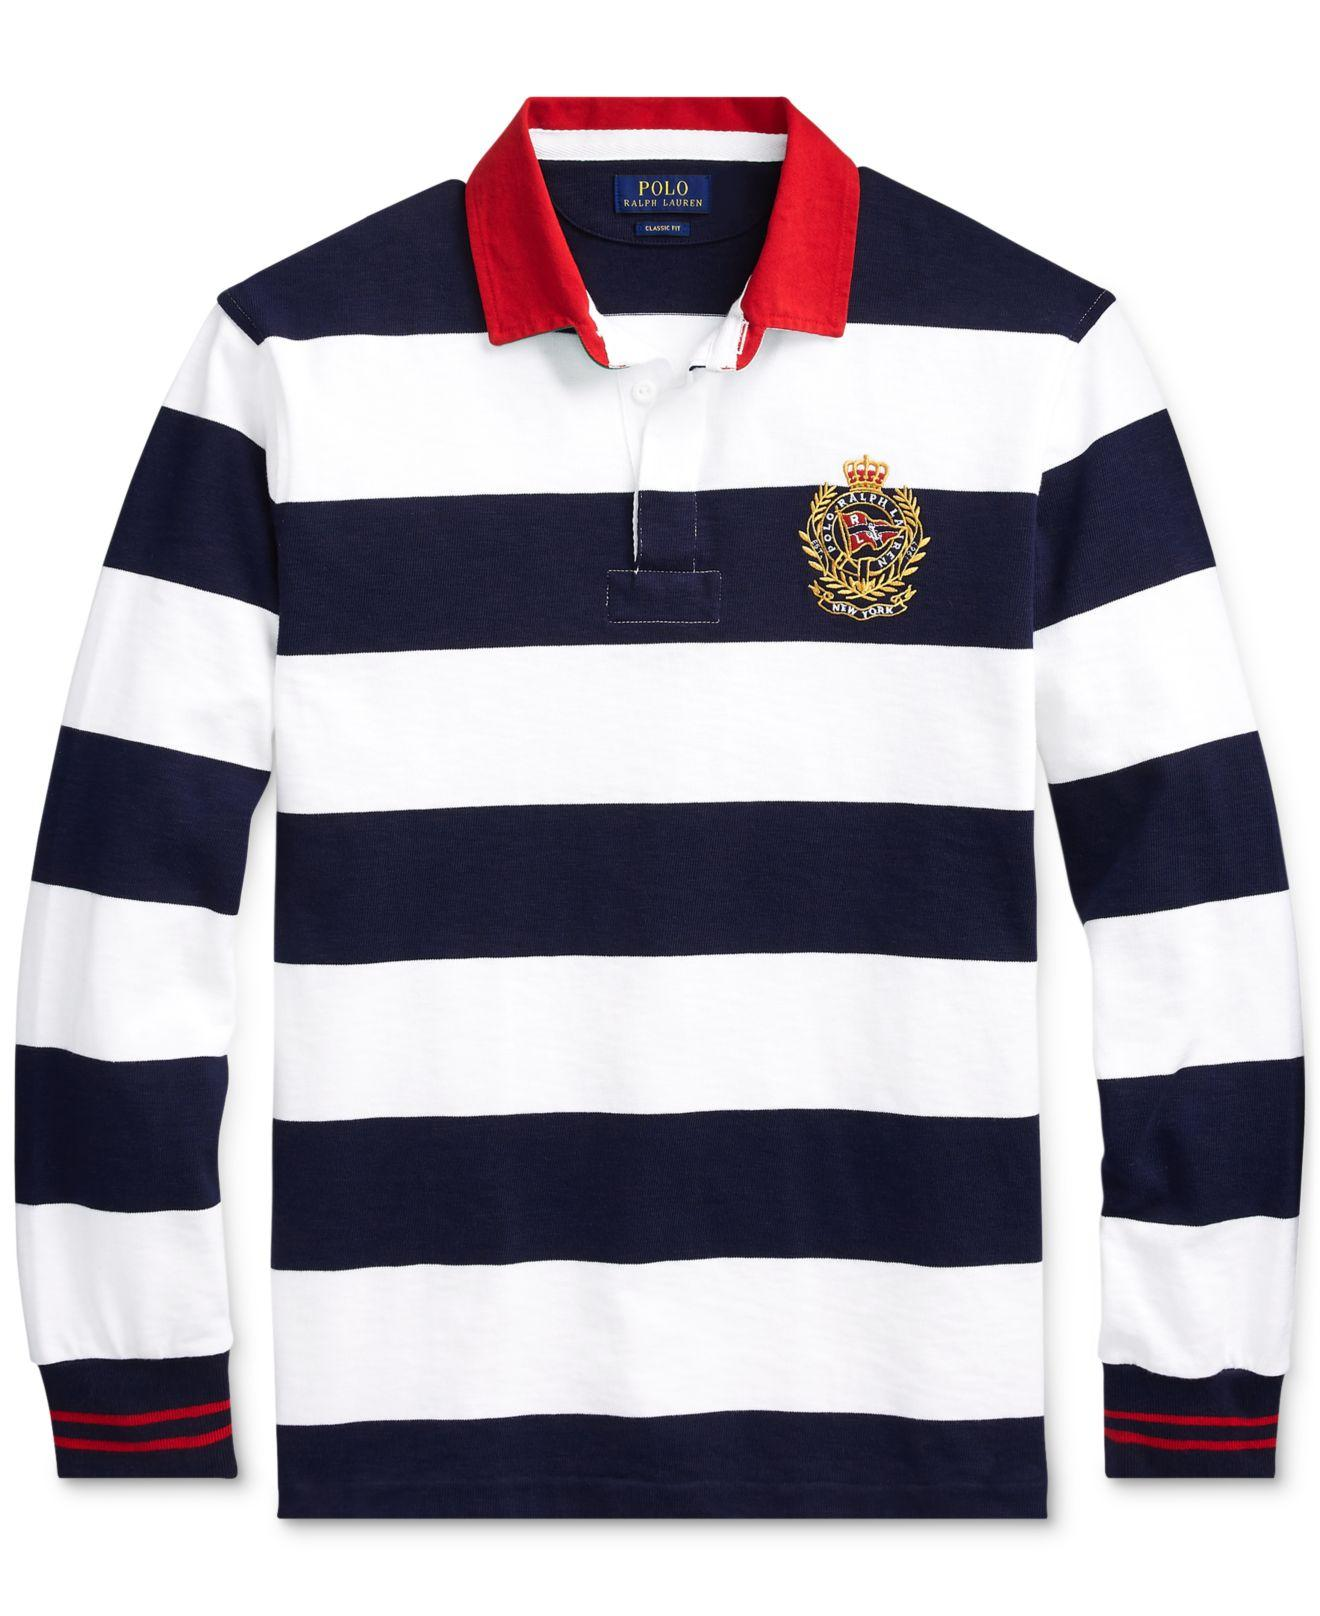 9e86cf729 Lyst - Polo Ralph Lauren Classic-fit Striped Rugby Shirt in Blue for Men